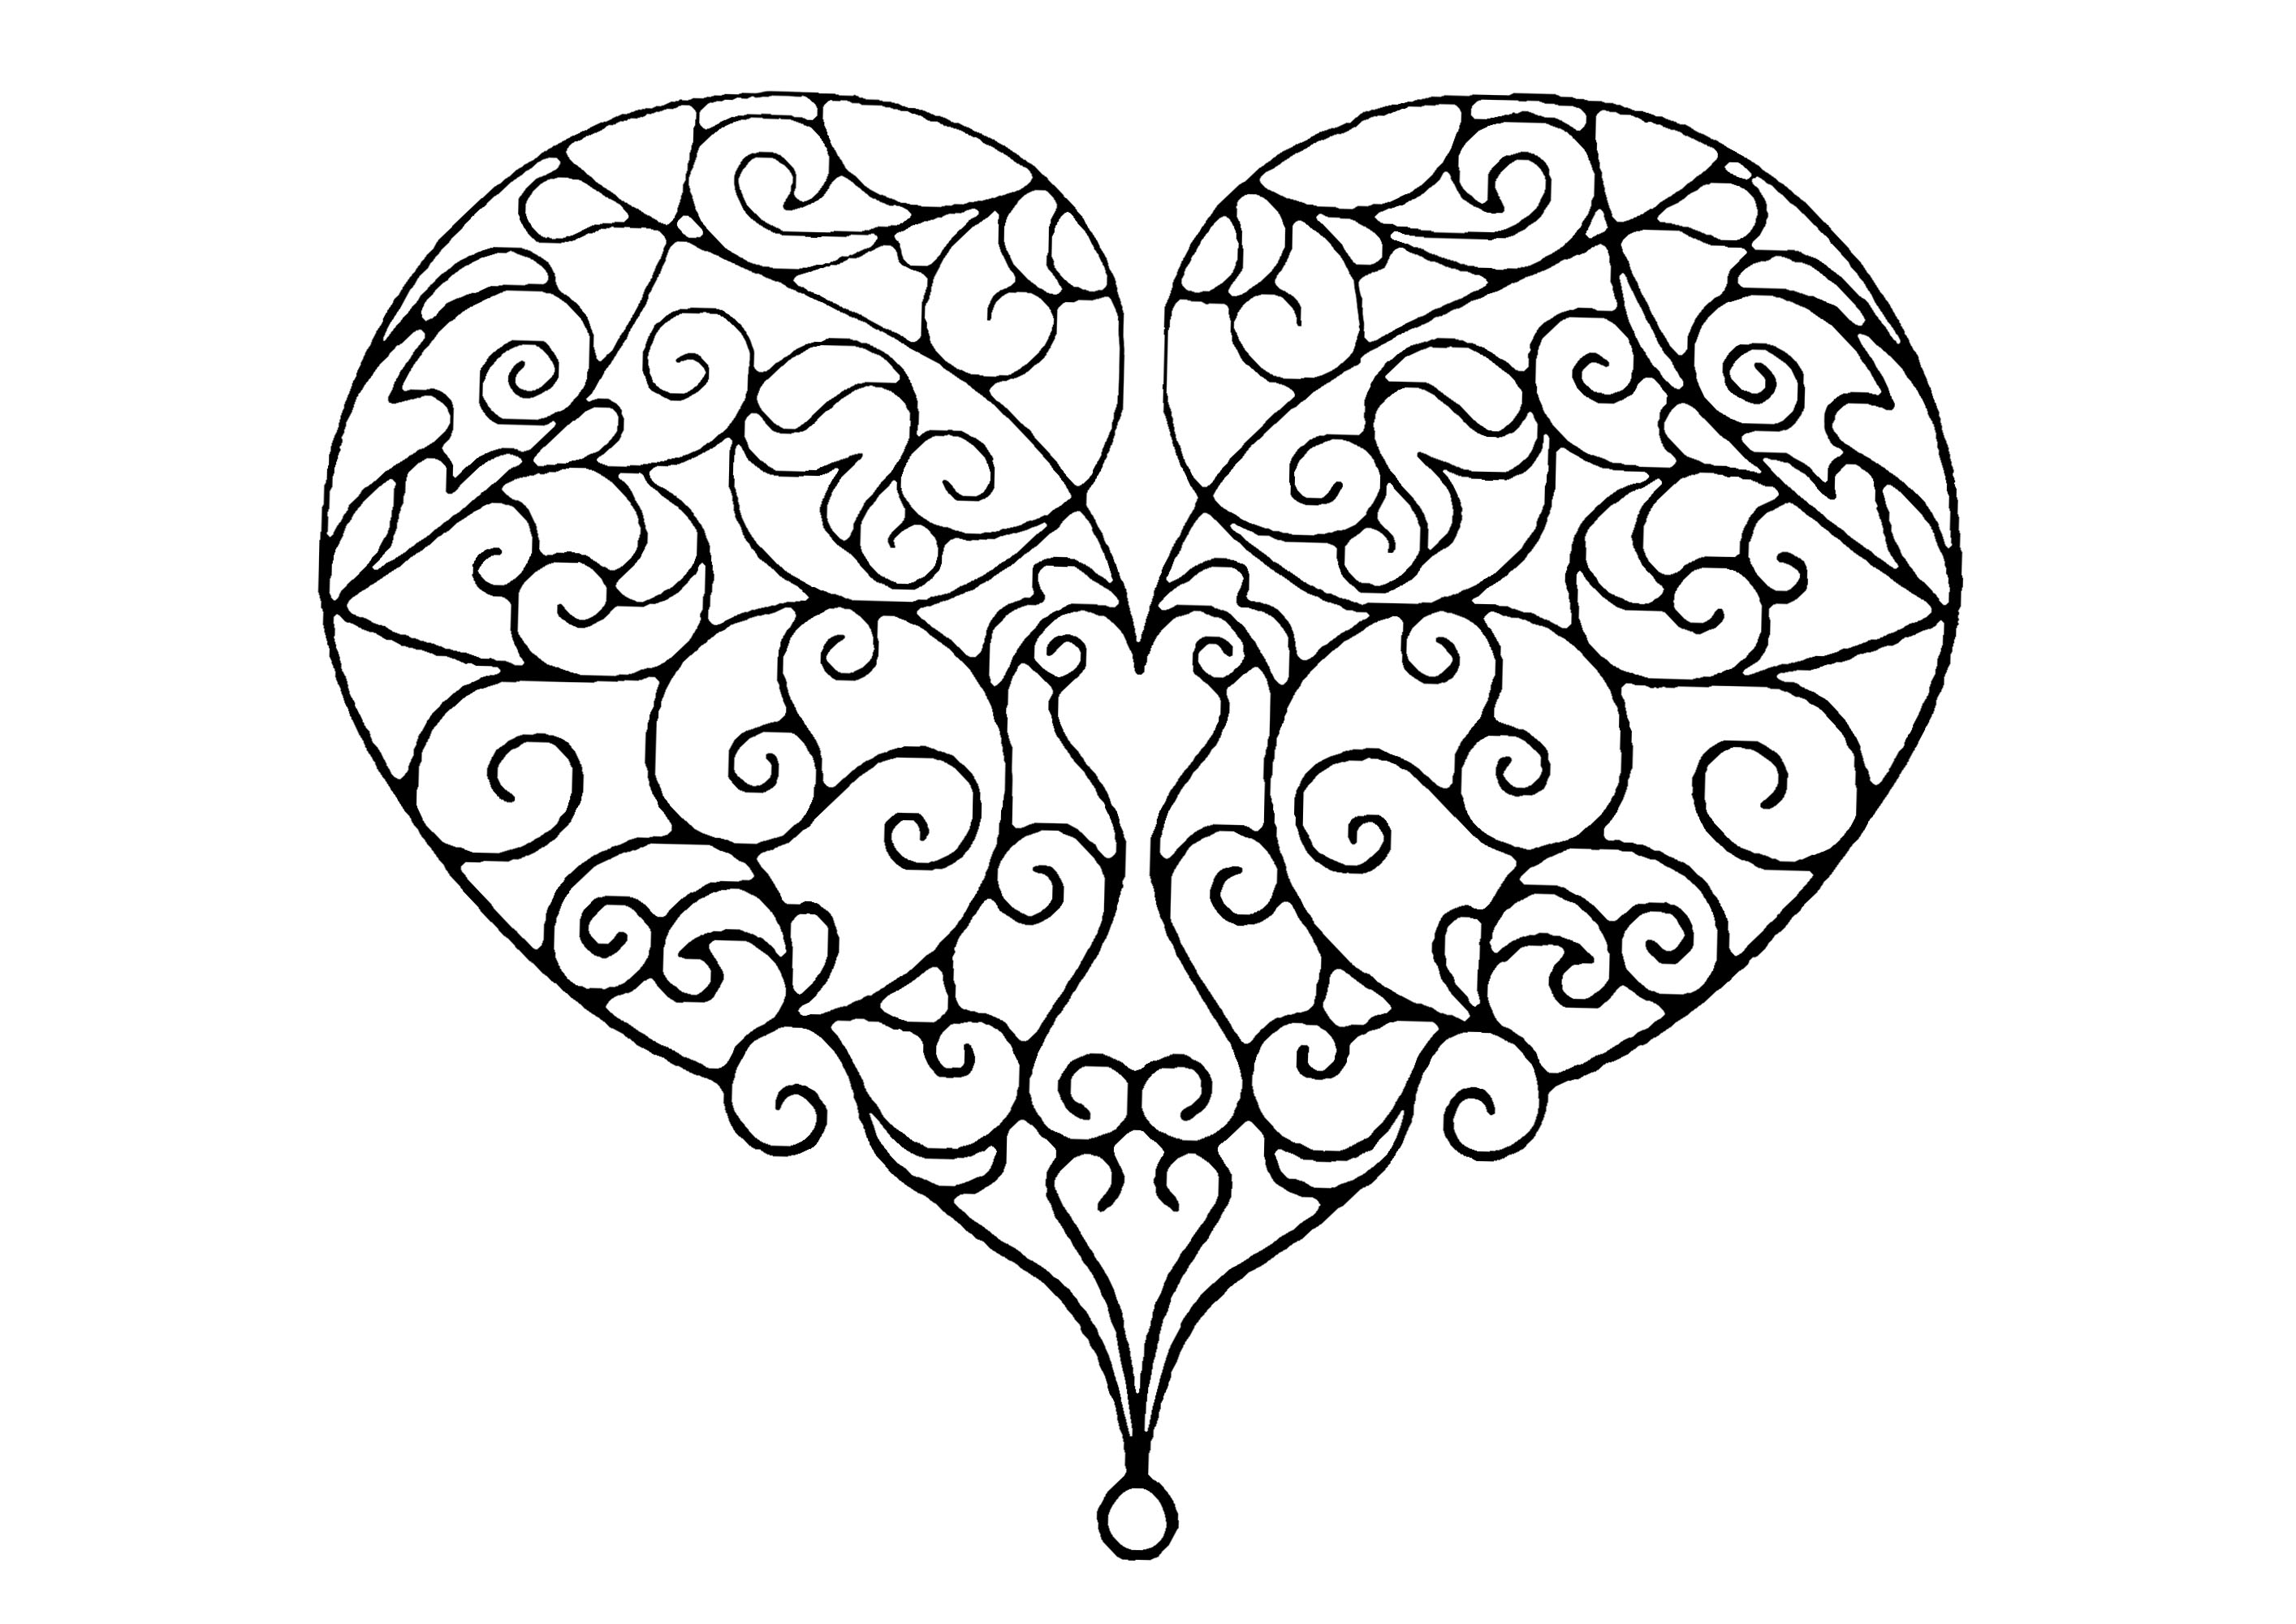 Color this heart created with intertwined lines